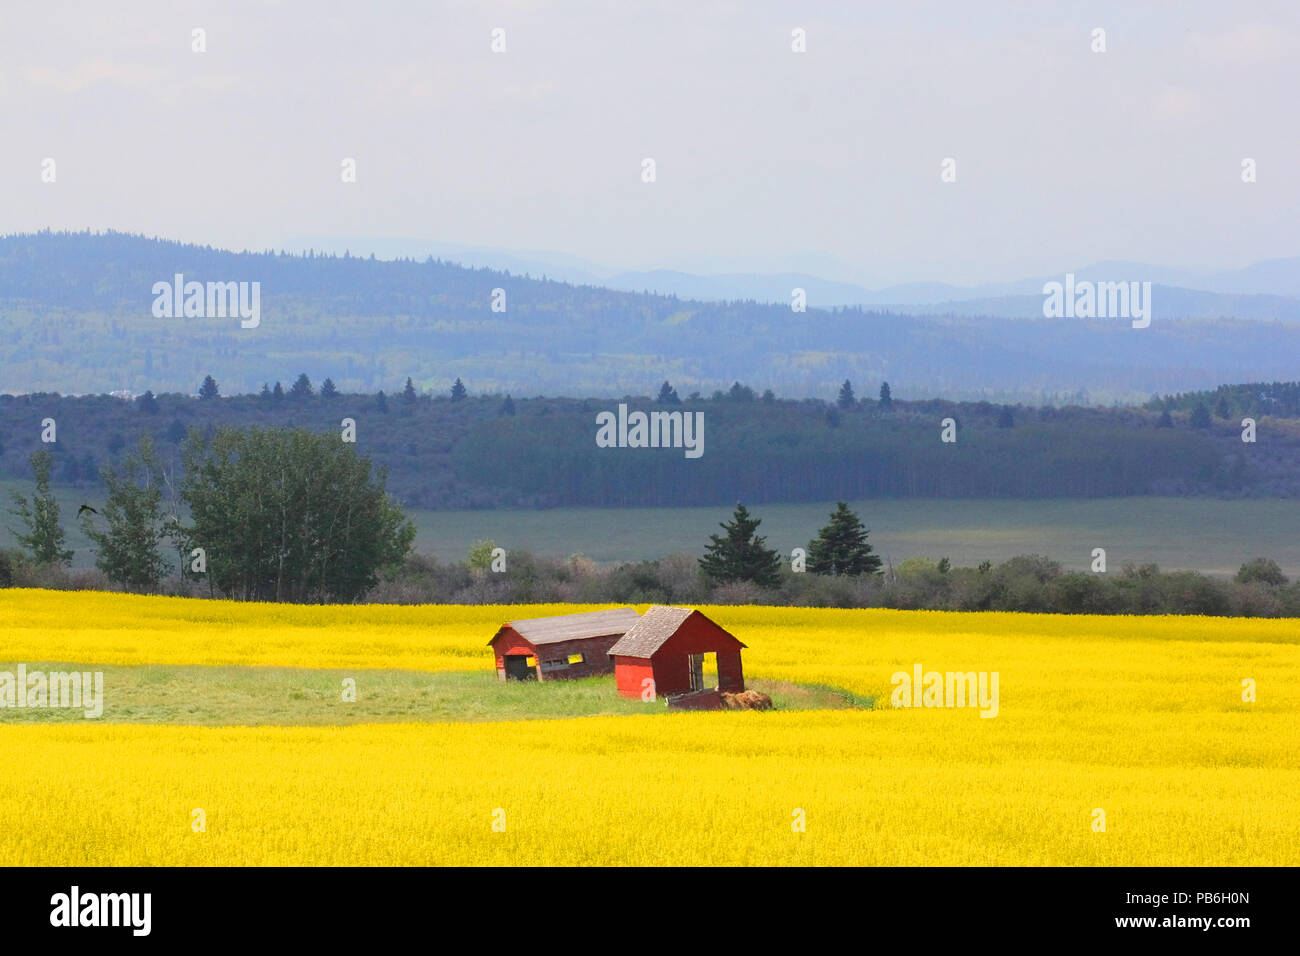 Field of canola and old red grain bins and the foothills of the Canadain Rockies - Stock Image